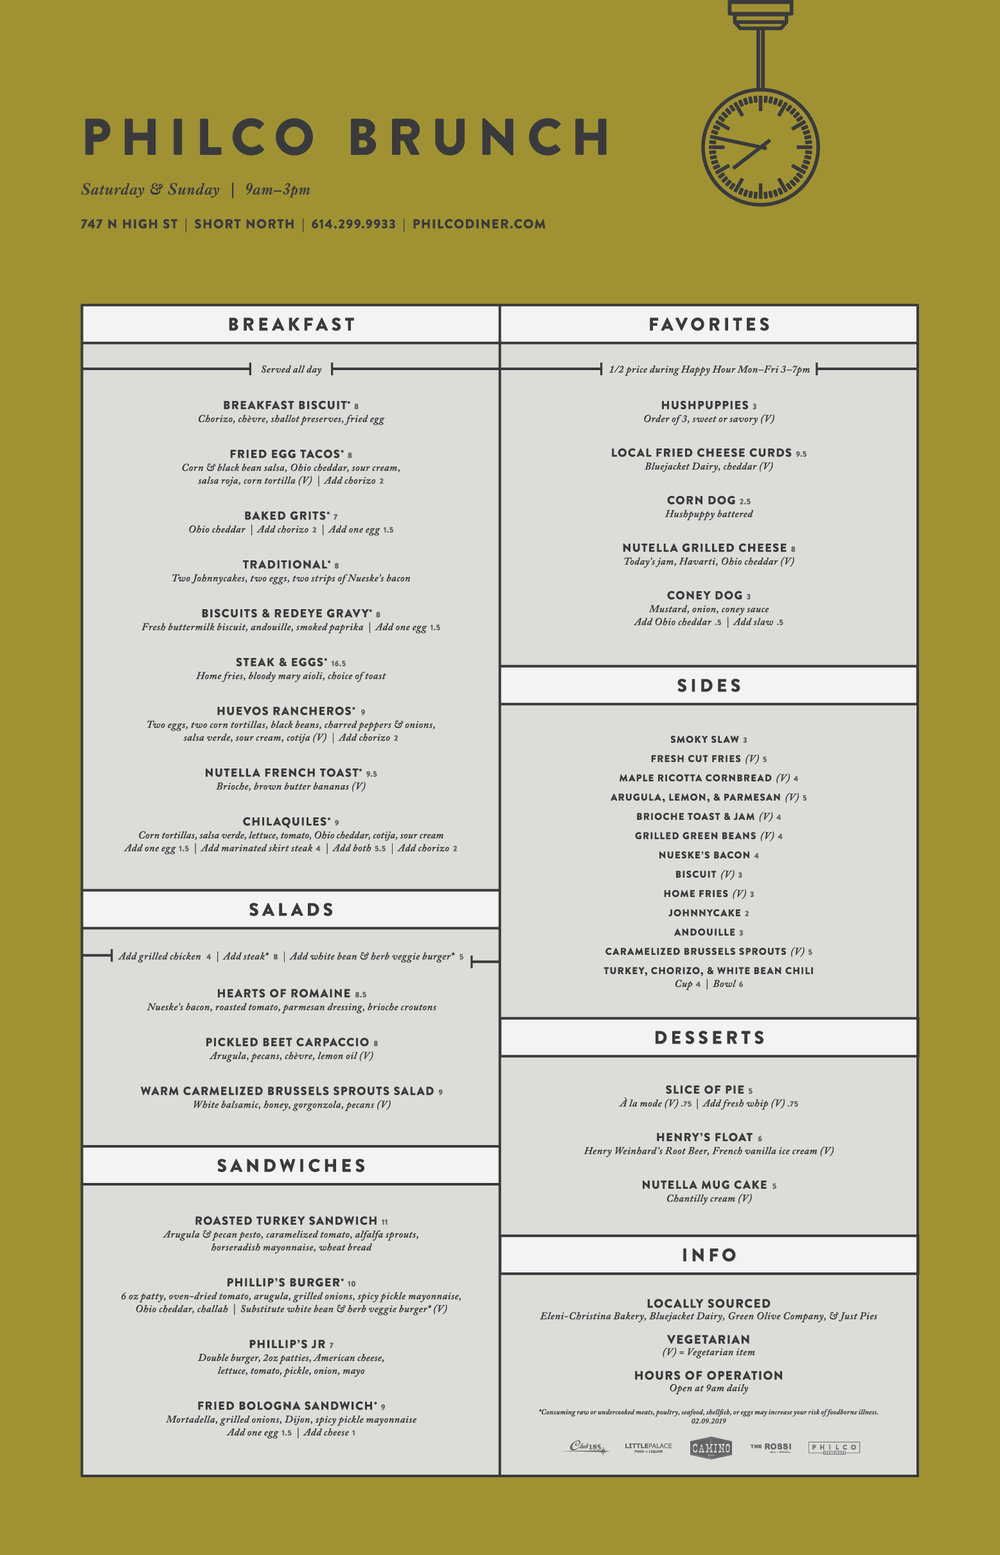 Philco_BrunchMenu_02-09-19.jpg